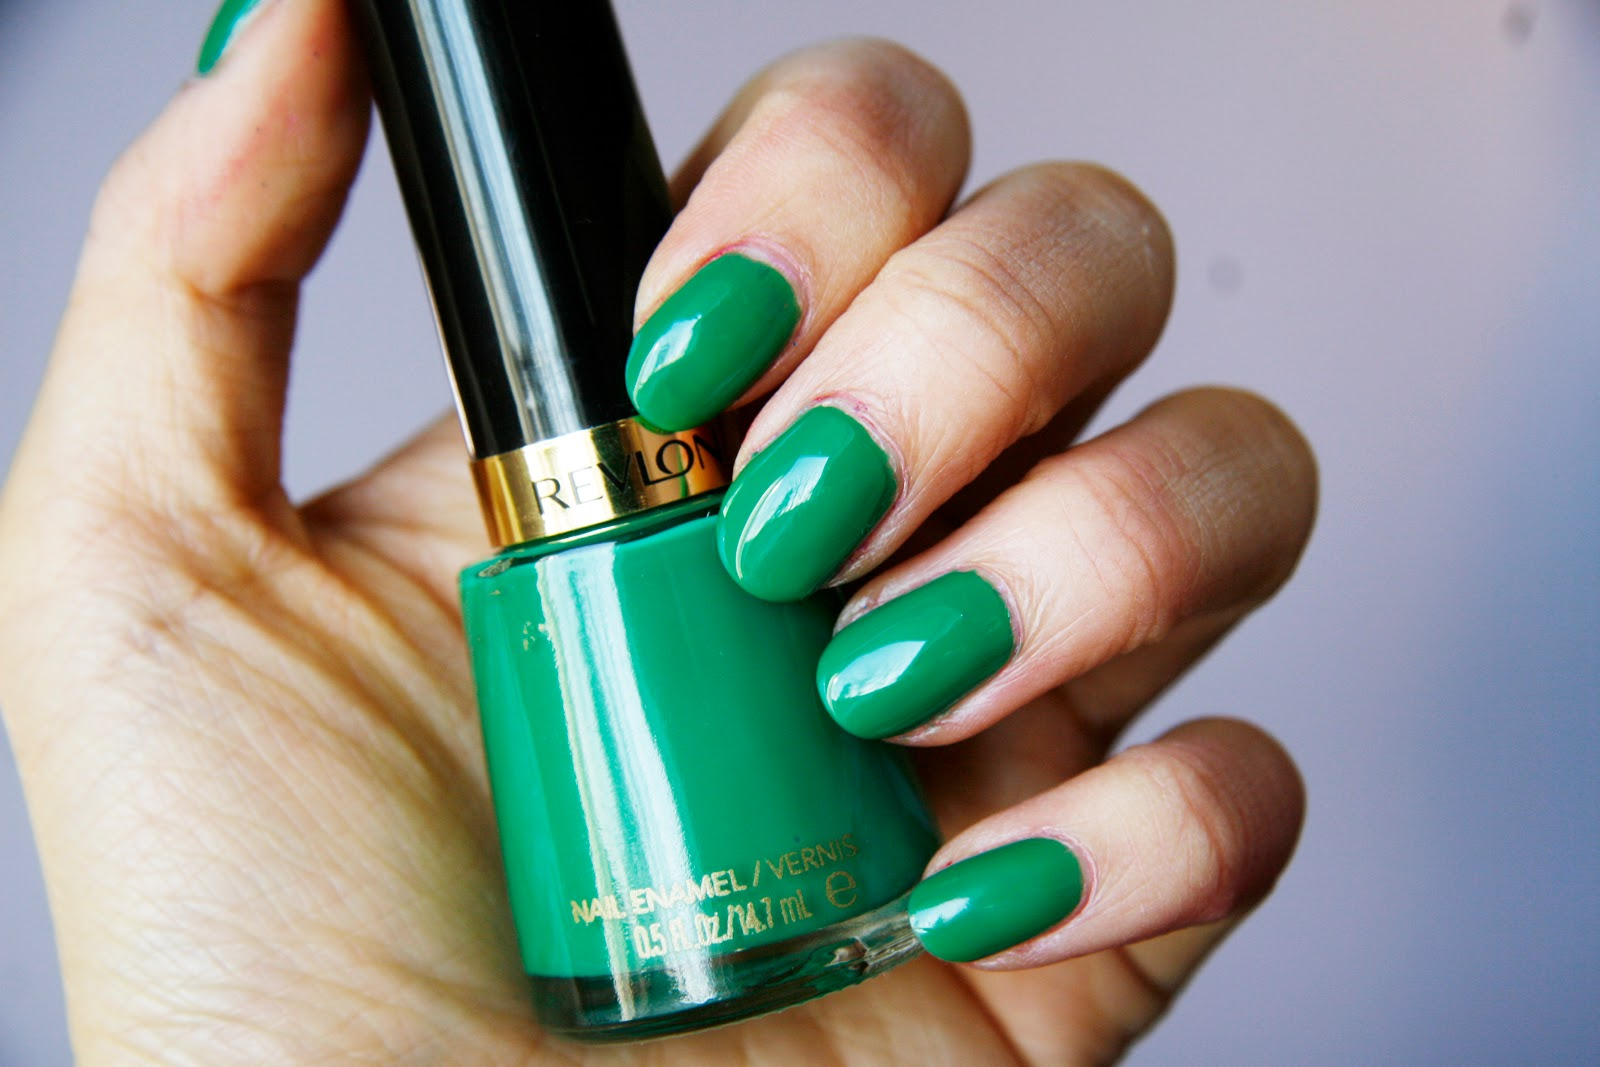 fun size beauty: Revlon Nail Enamel in Posh